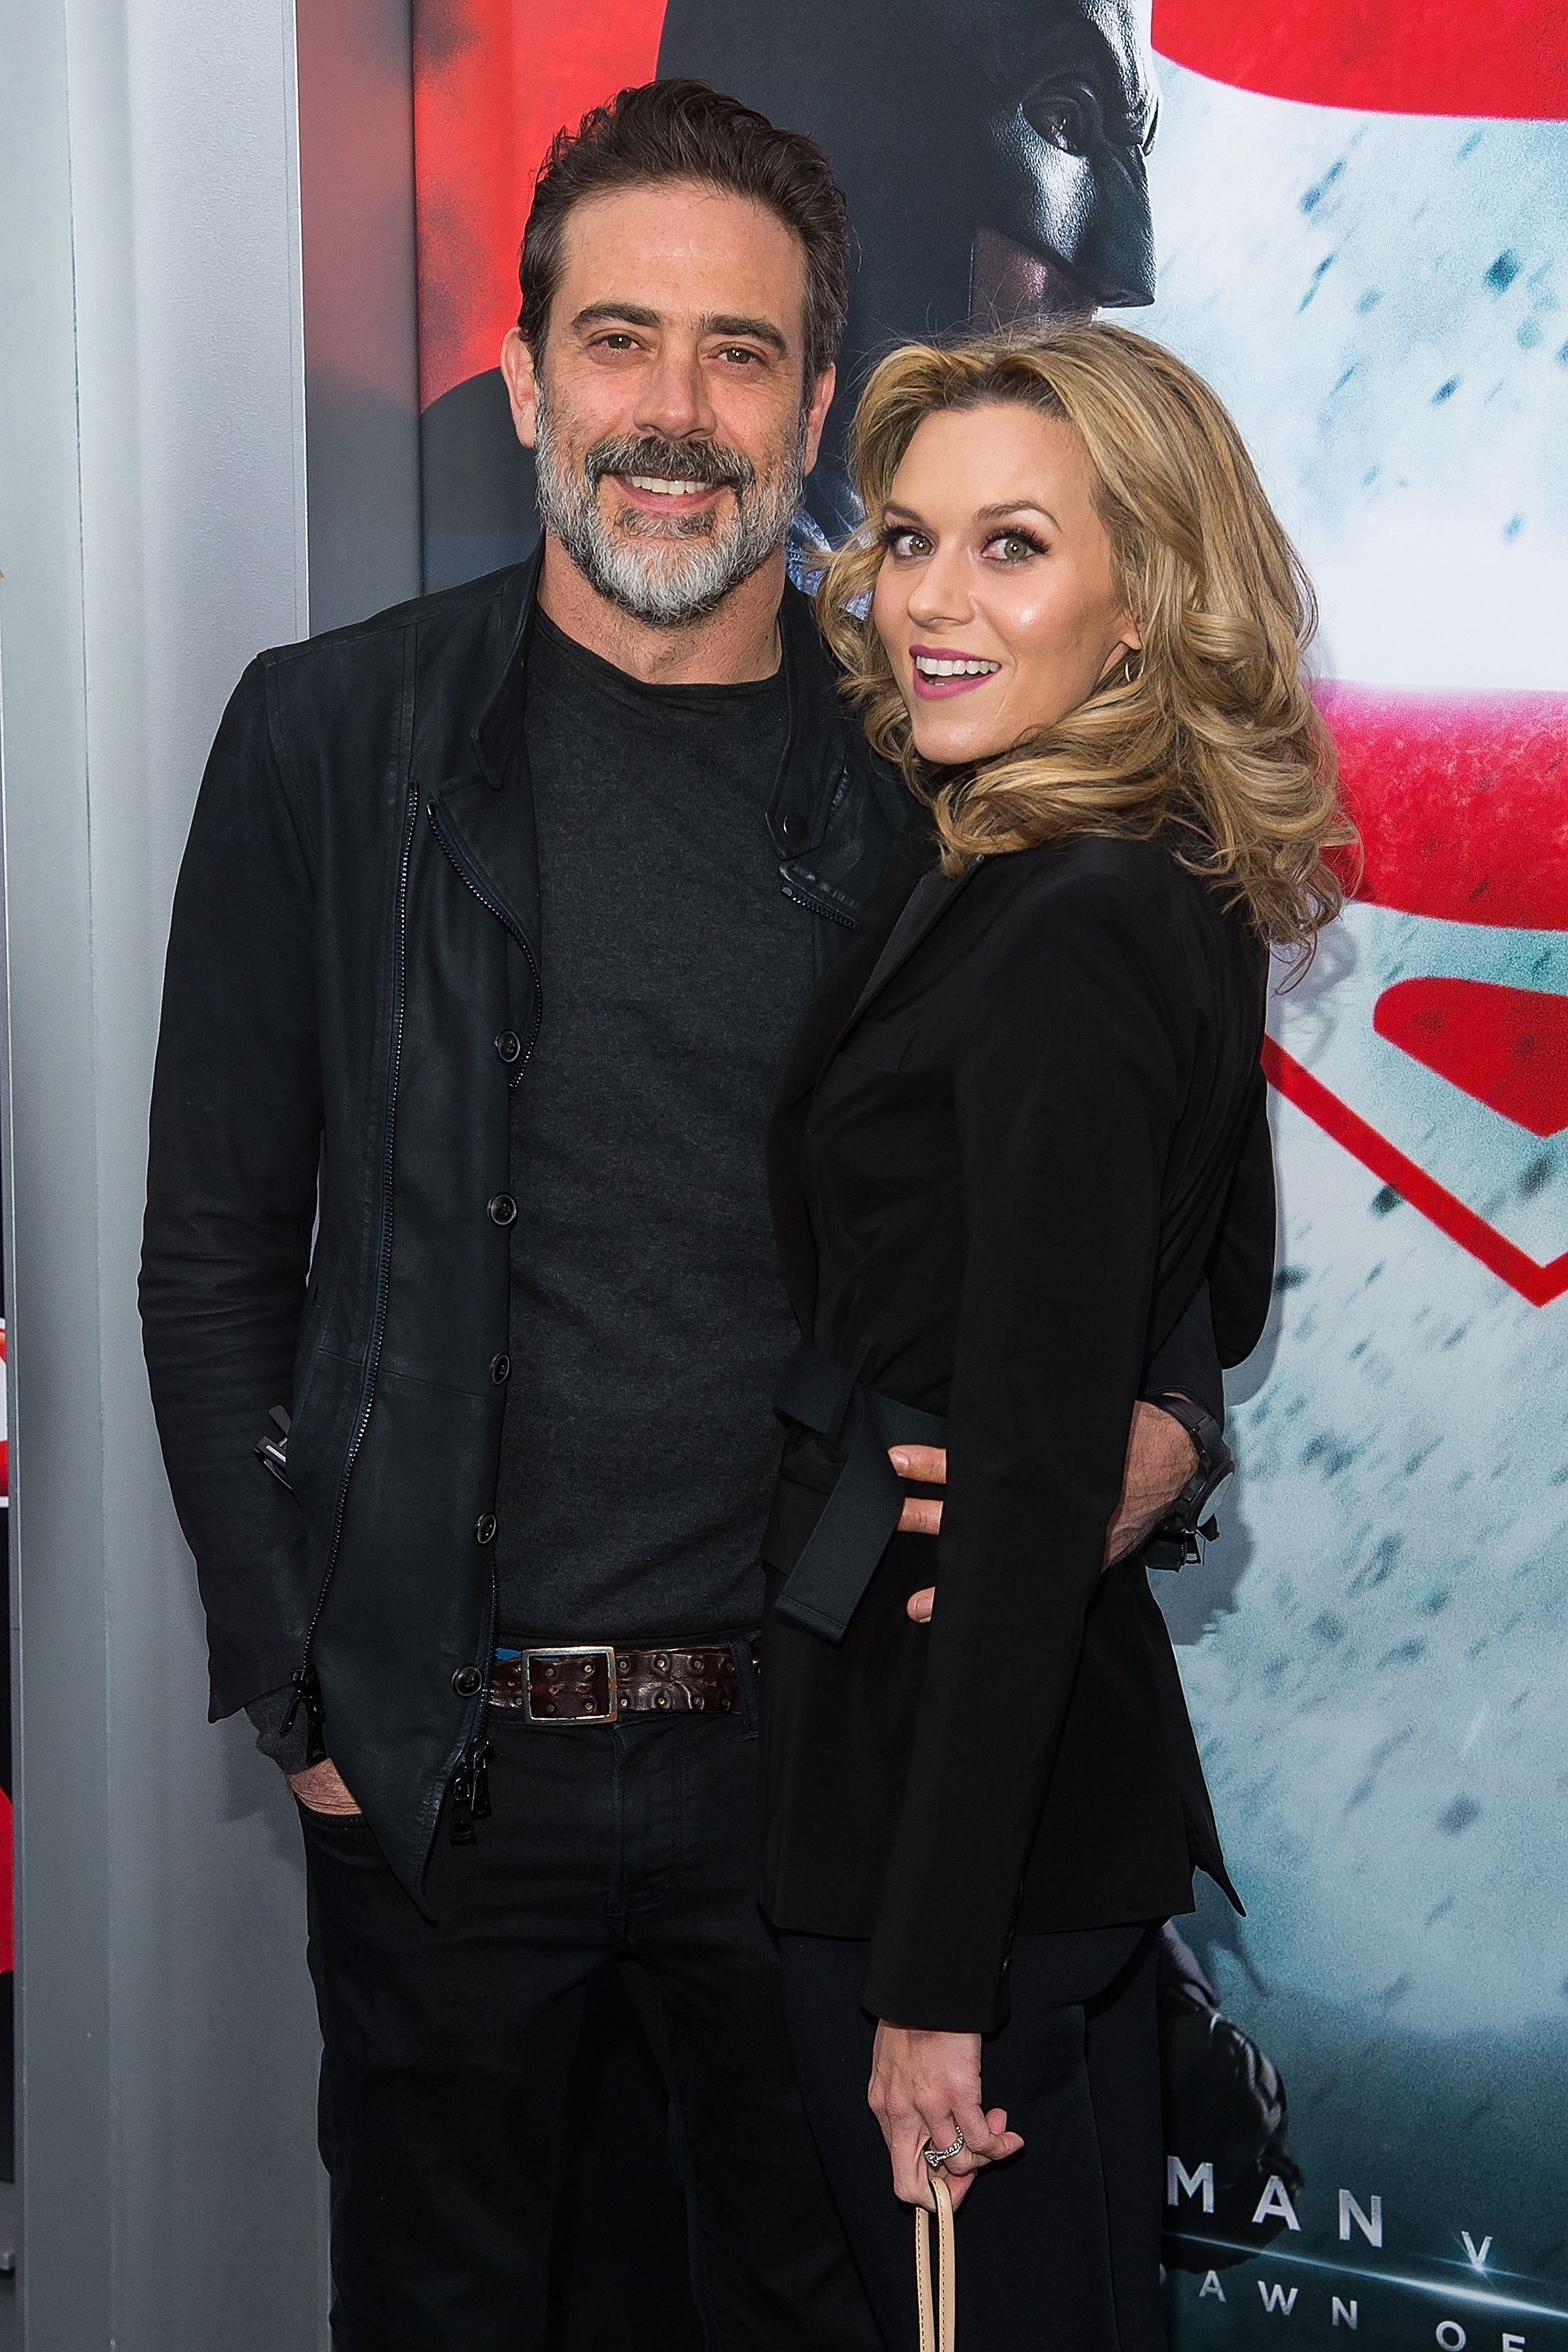 Jeffrey Dean Morgan and Hilarie Burton Morgan's close friend and Supernatural star Jensen Ackles is to thank for this pair; Ackles and his wife arranged a casual blind double date with Burton in 2009. A few tequila shots later, it was love.